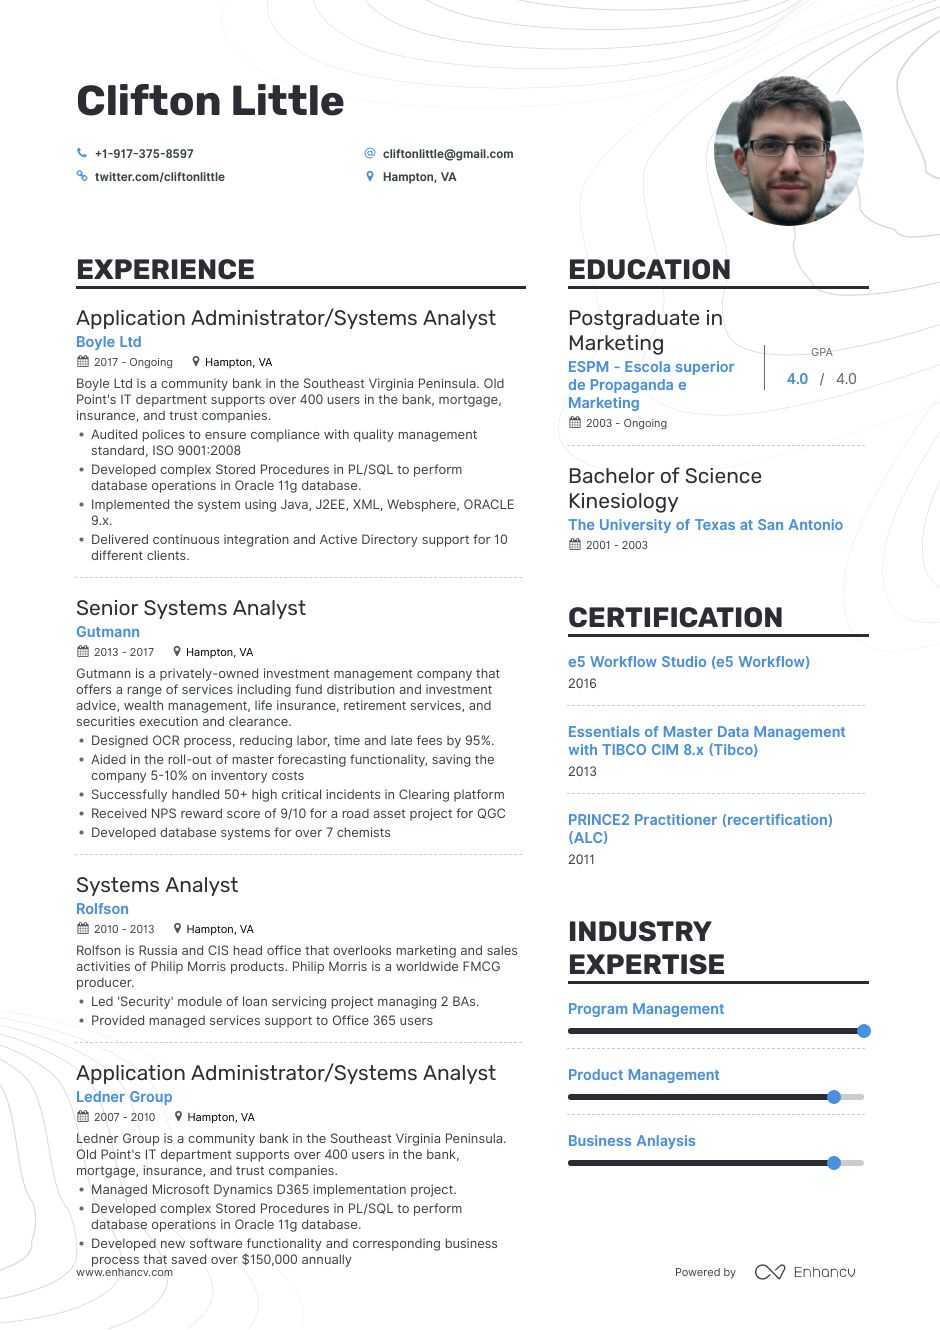 top systems analyst resume examples samples for enhancv system example hub introductory Resume System Analyst Resume Example